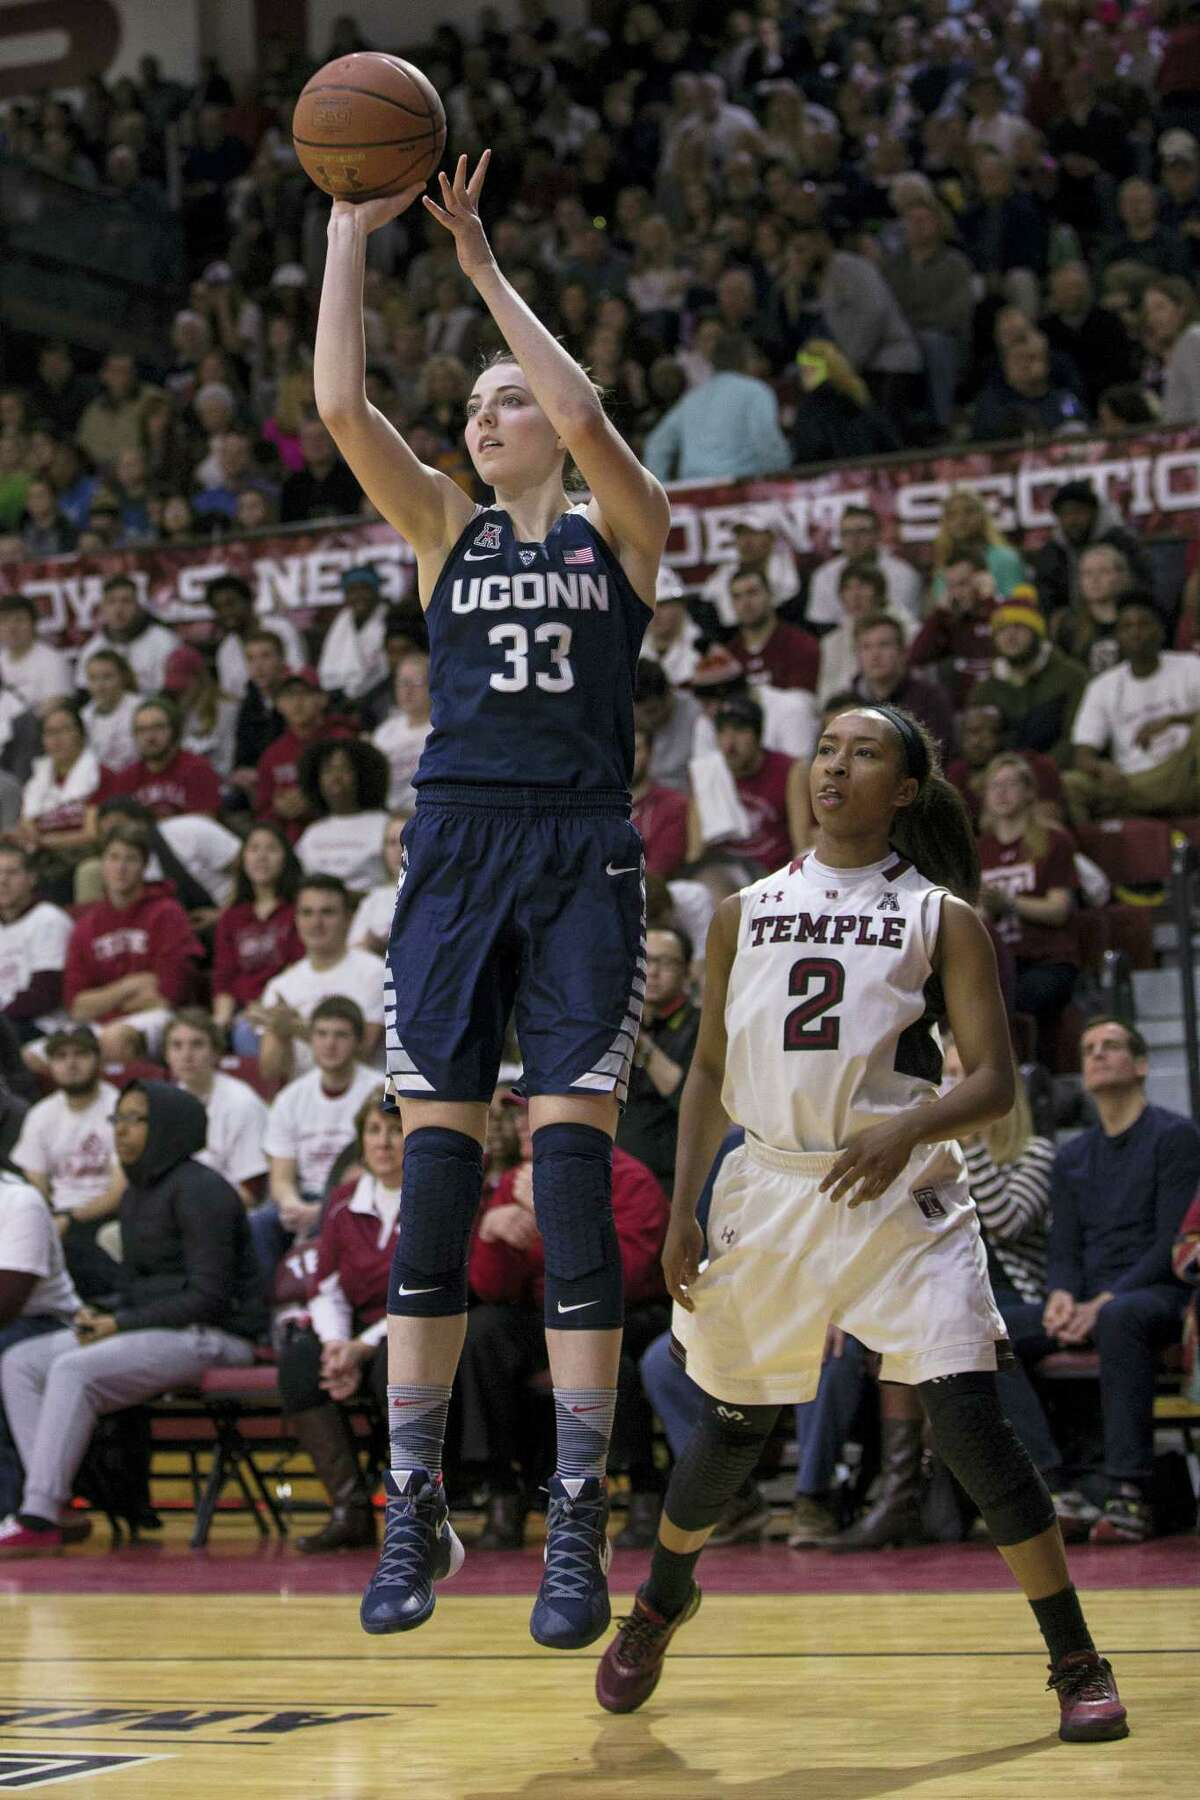 UConn's Katie Lou Samuelson (33), shooting the ball with Temple's Feyonda Fitzgerald (2) looking on during the second half Sunday, knows she can't just sit and watch UConn's seniors if the Huskies are to accomplish their goals.